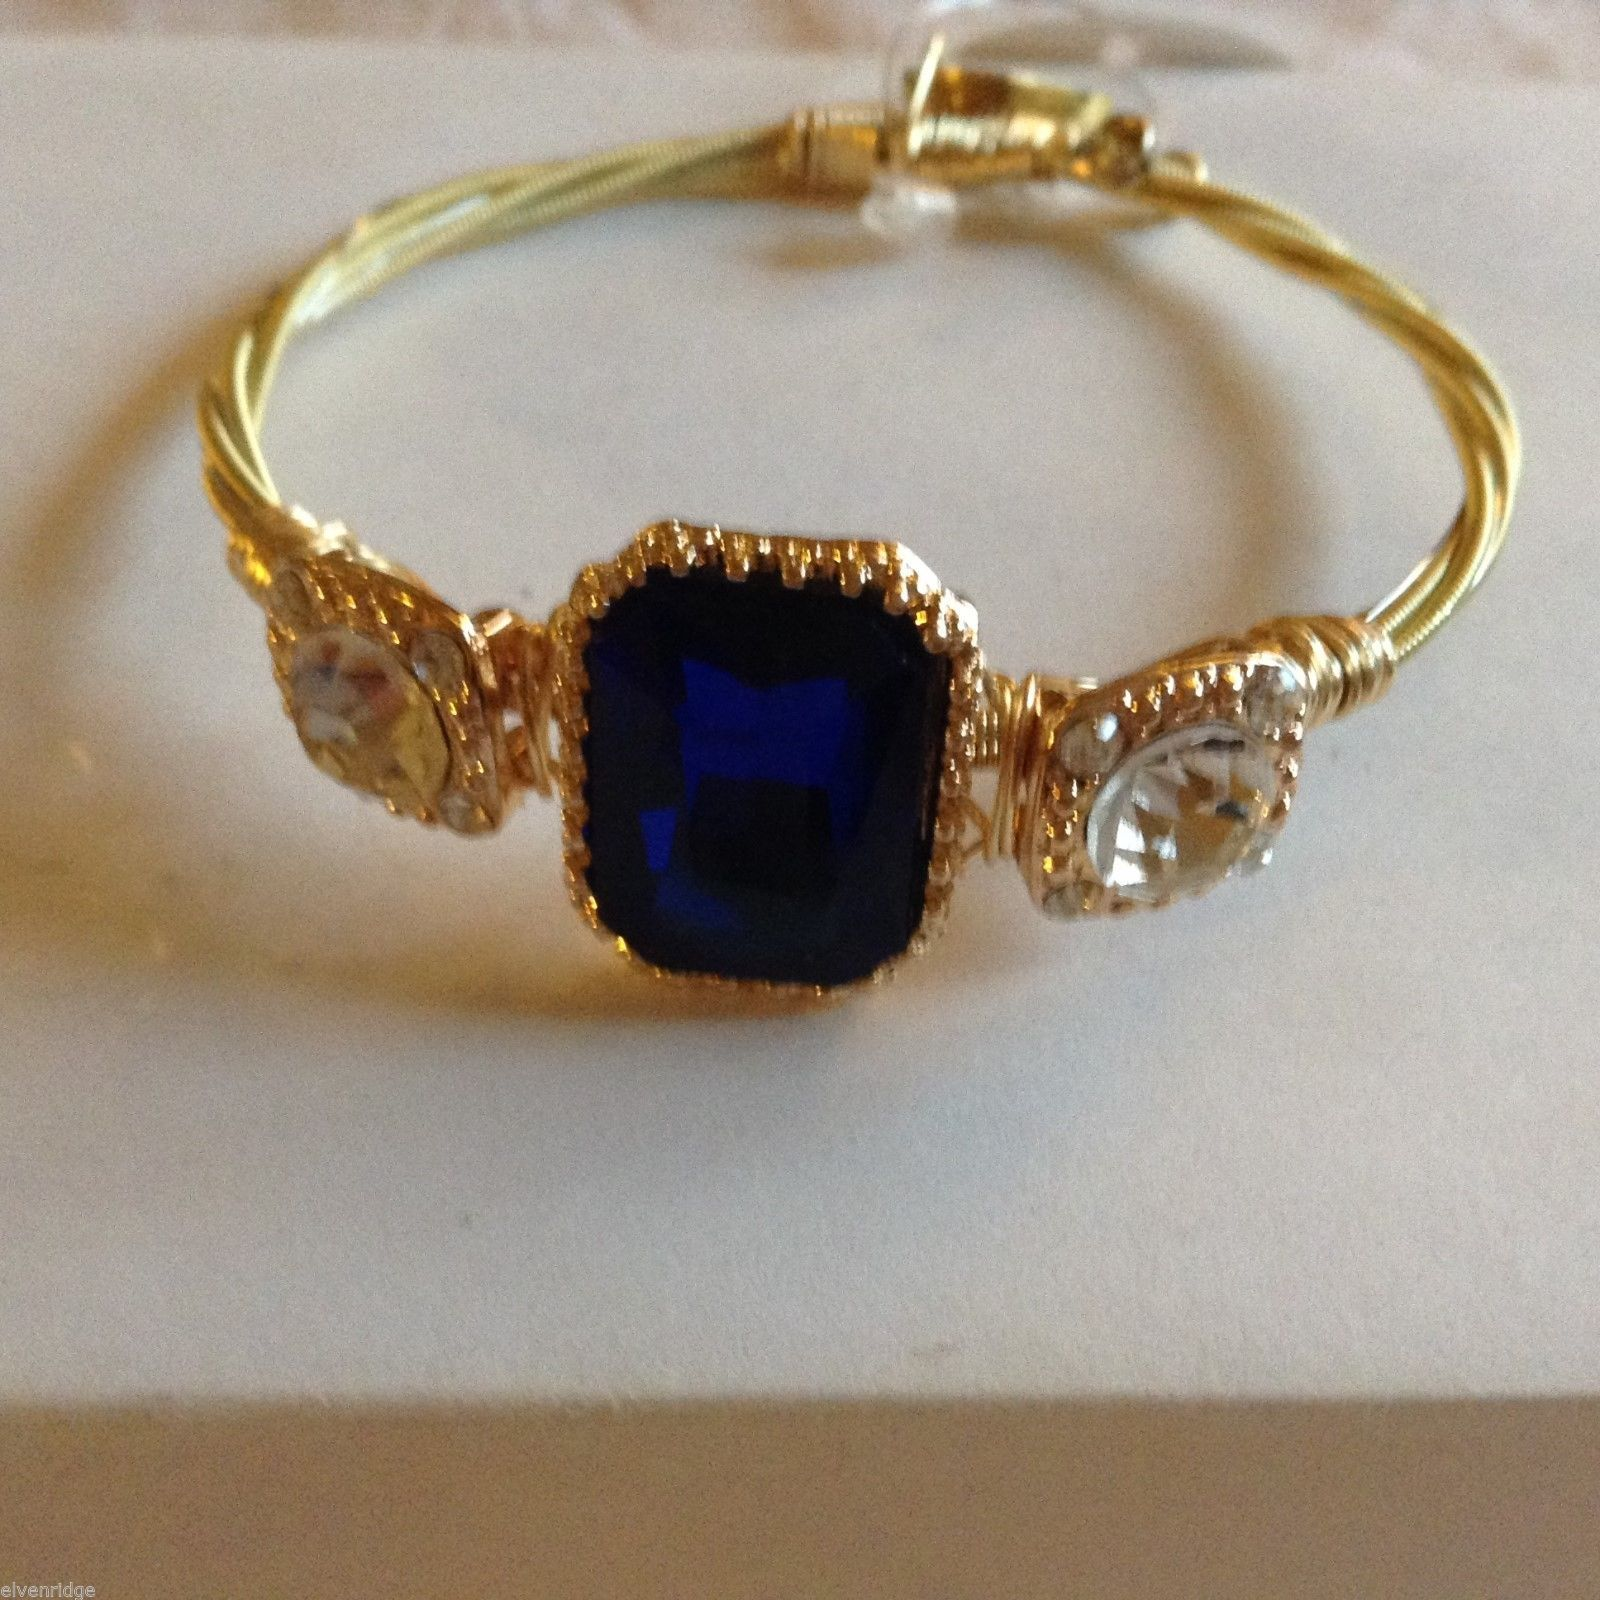 String Theory Guitar Strings Gold Bracelet w/ a Royal Blue Stone, Size 7 1/2